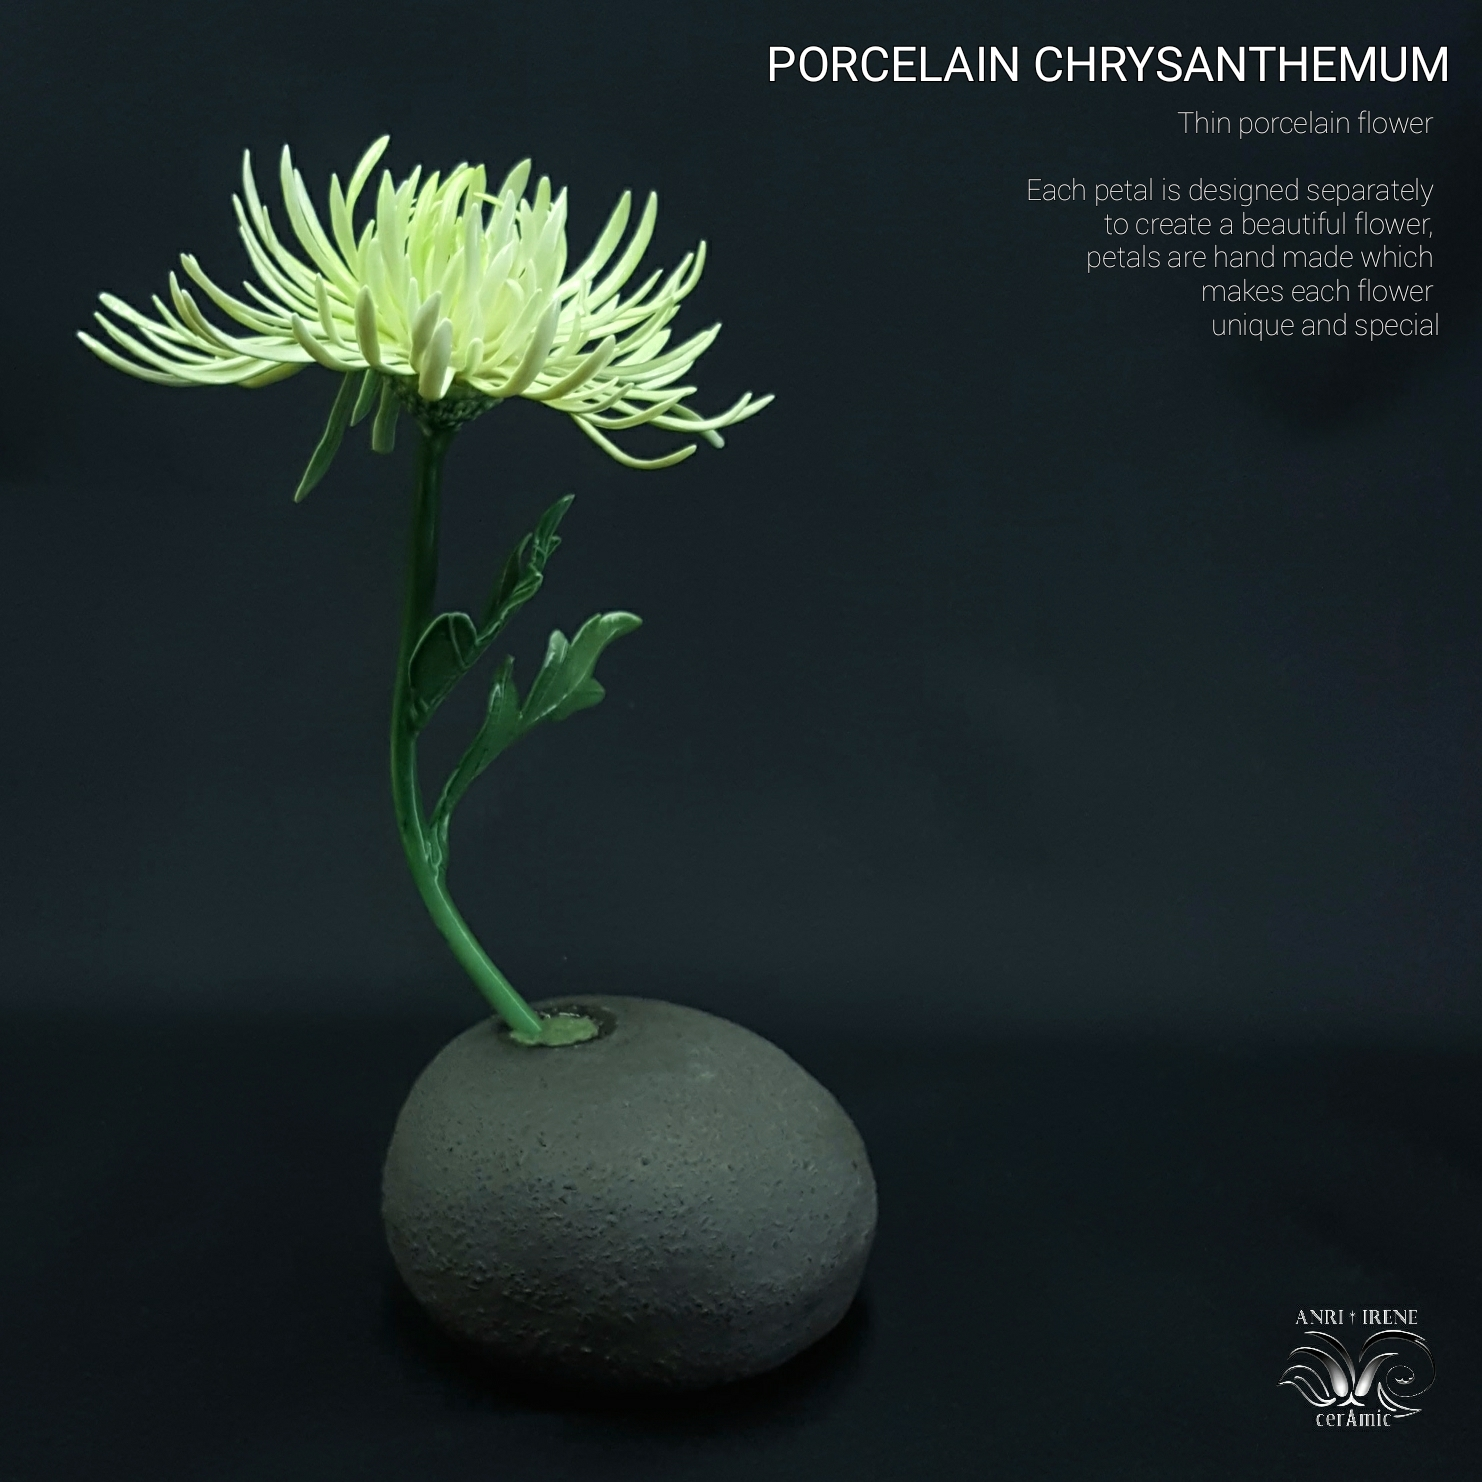 Porcelain ceramic chrysanthemum